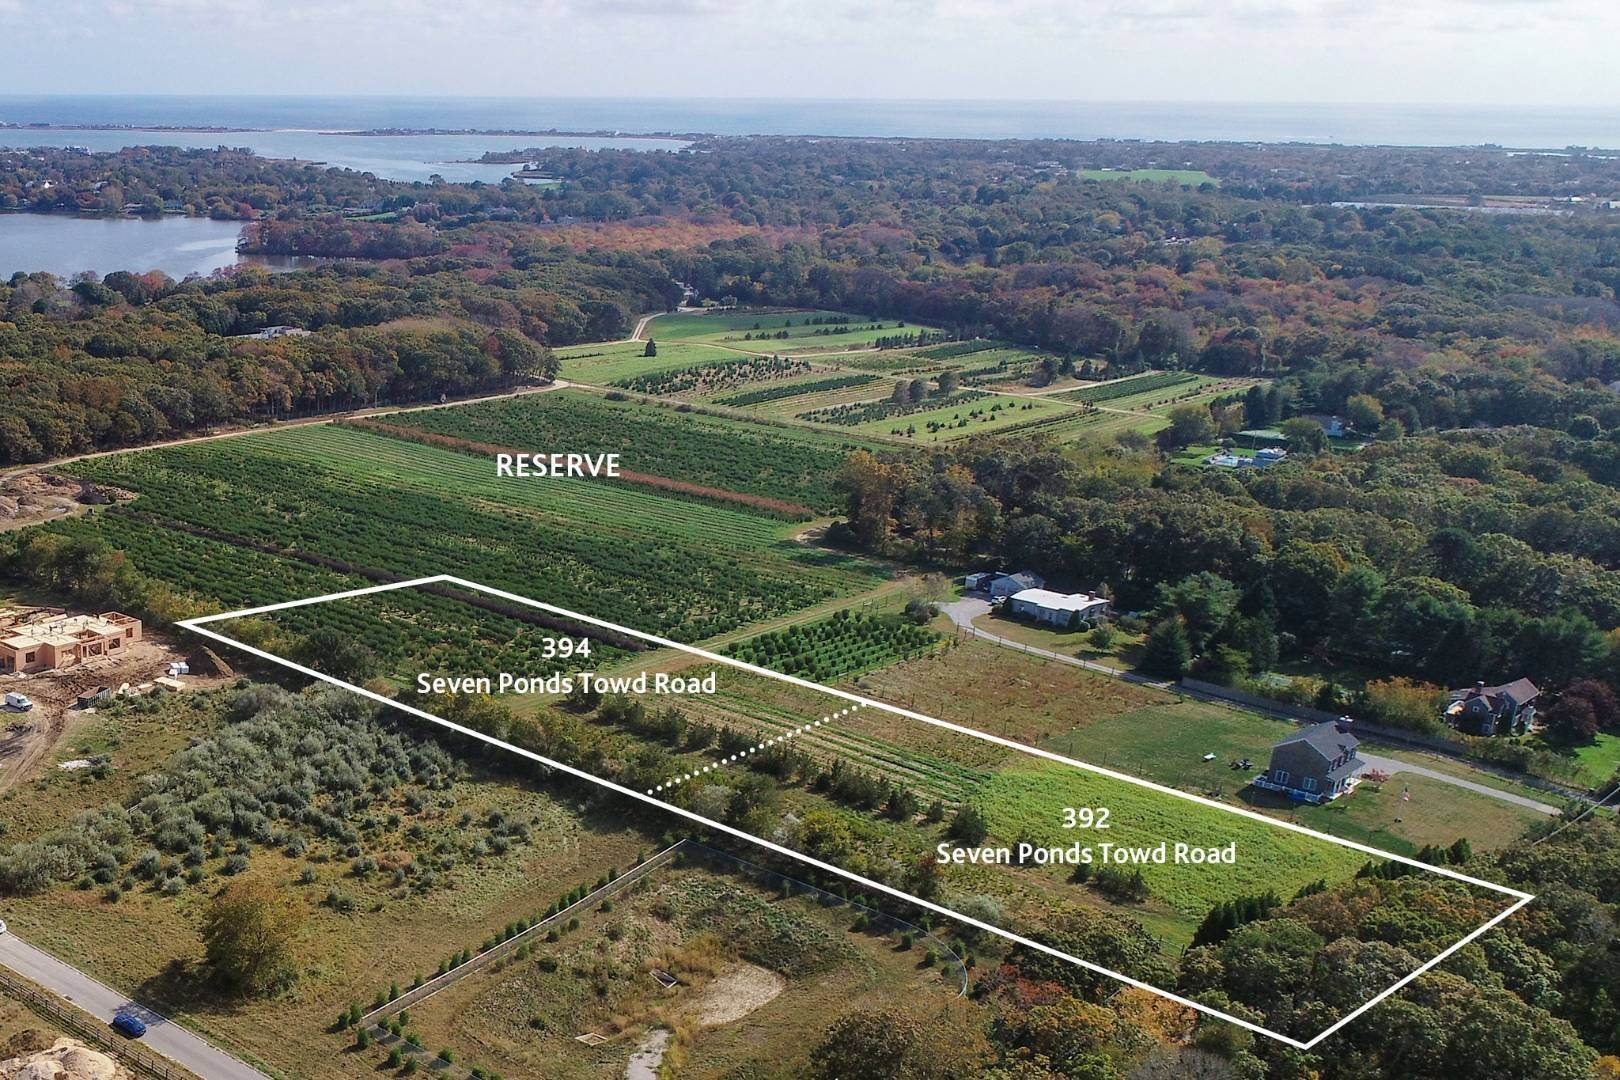 Land for Sale at Estate-Quality Parcels Overlooking 48 Acre Reserve 394 Seven Ponds Towd Road, Water Mill, NY 11976